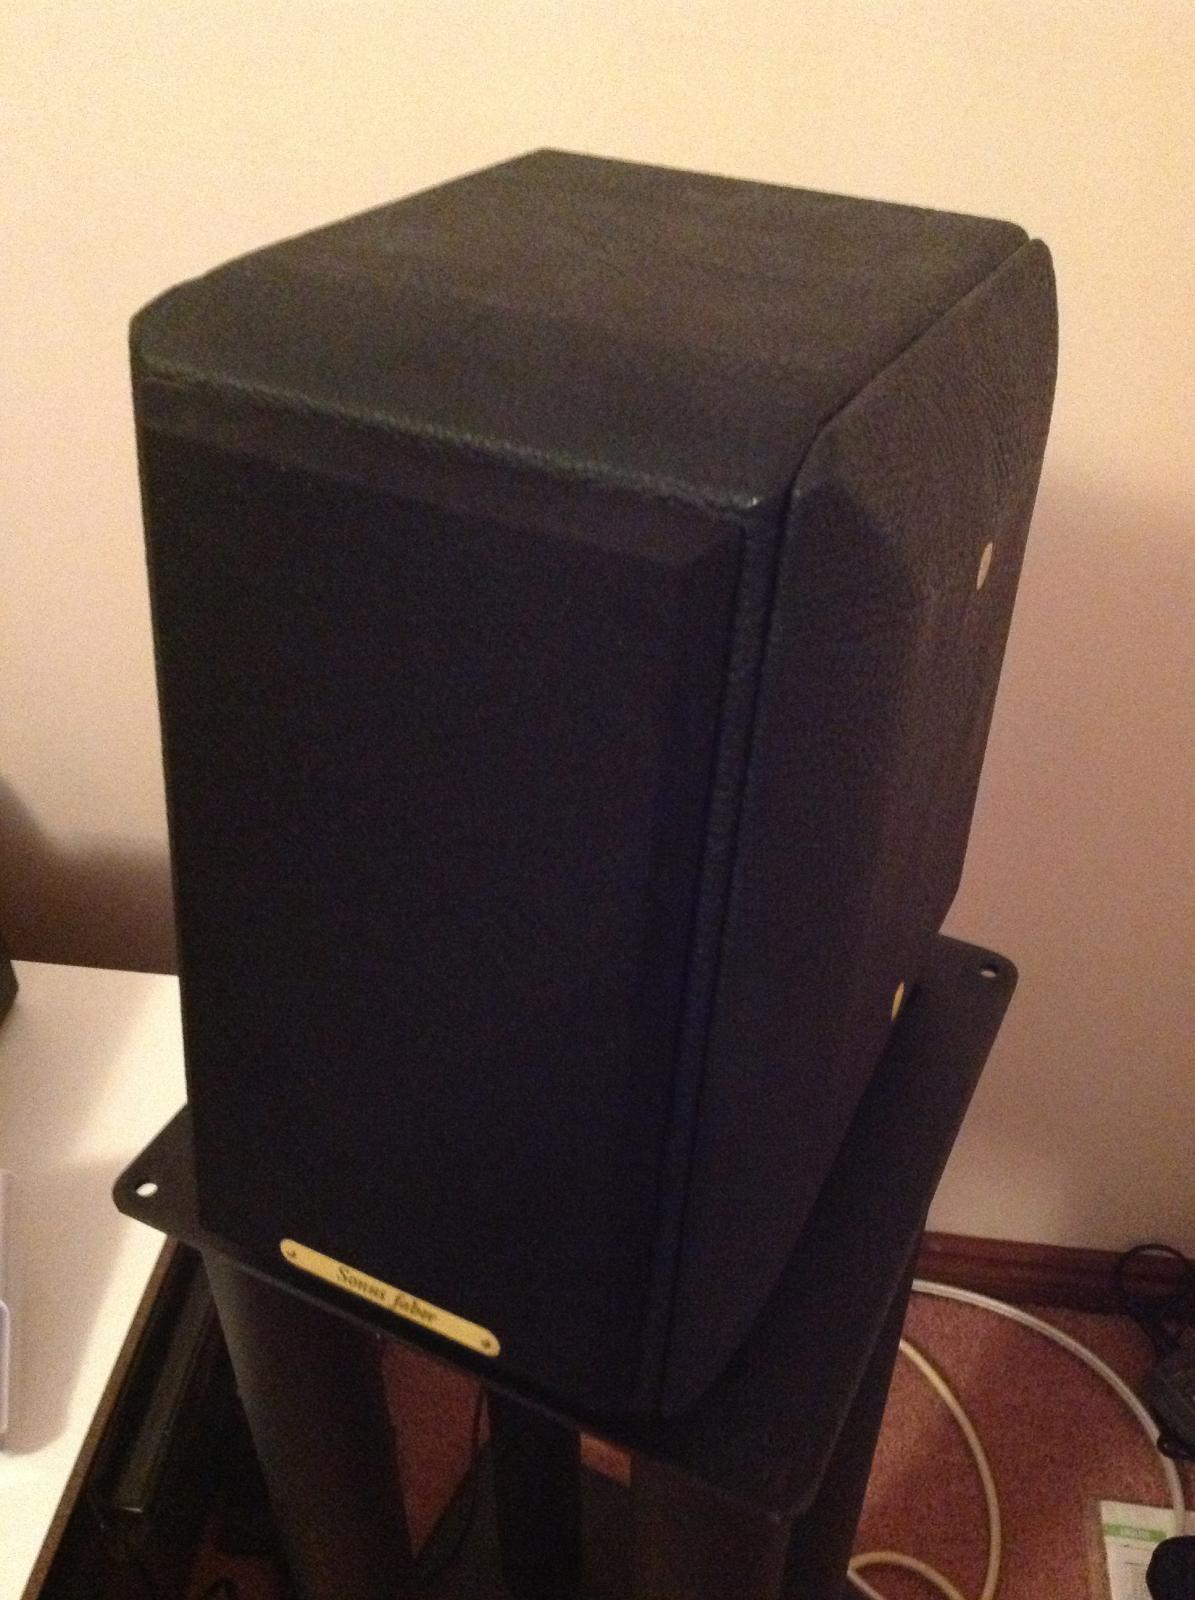 SOLD: Sonus Faber Toy Monitors - Classifieds - Audio - StereoNET